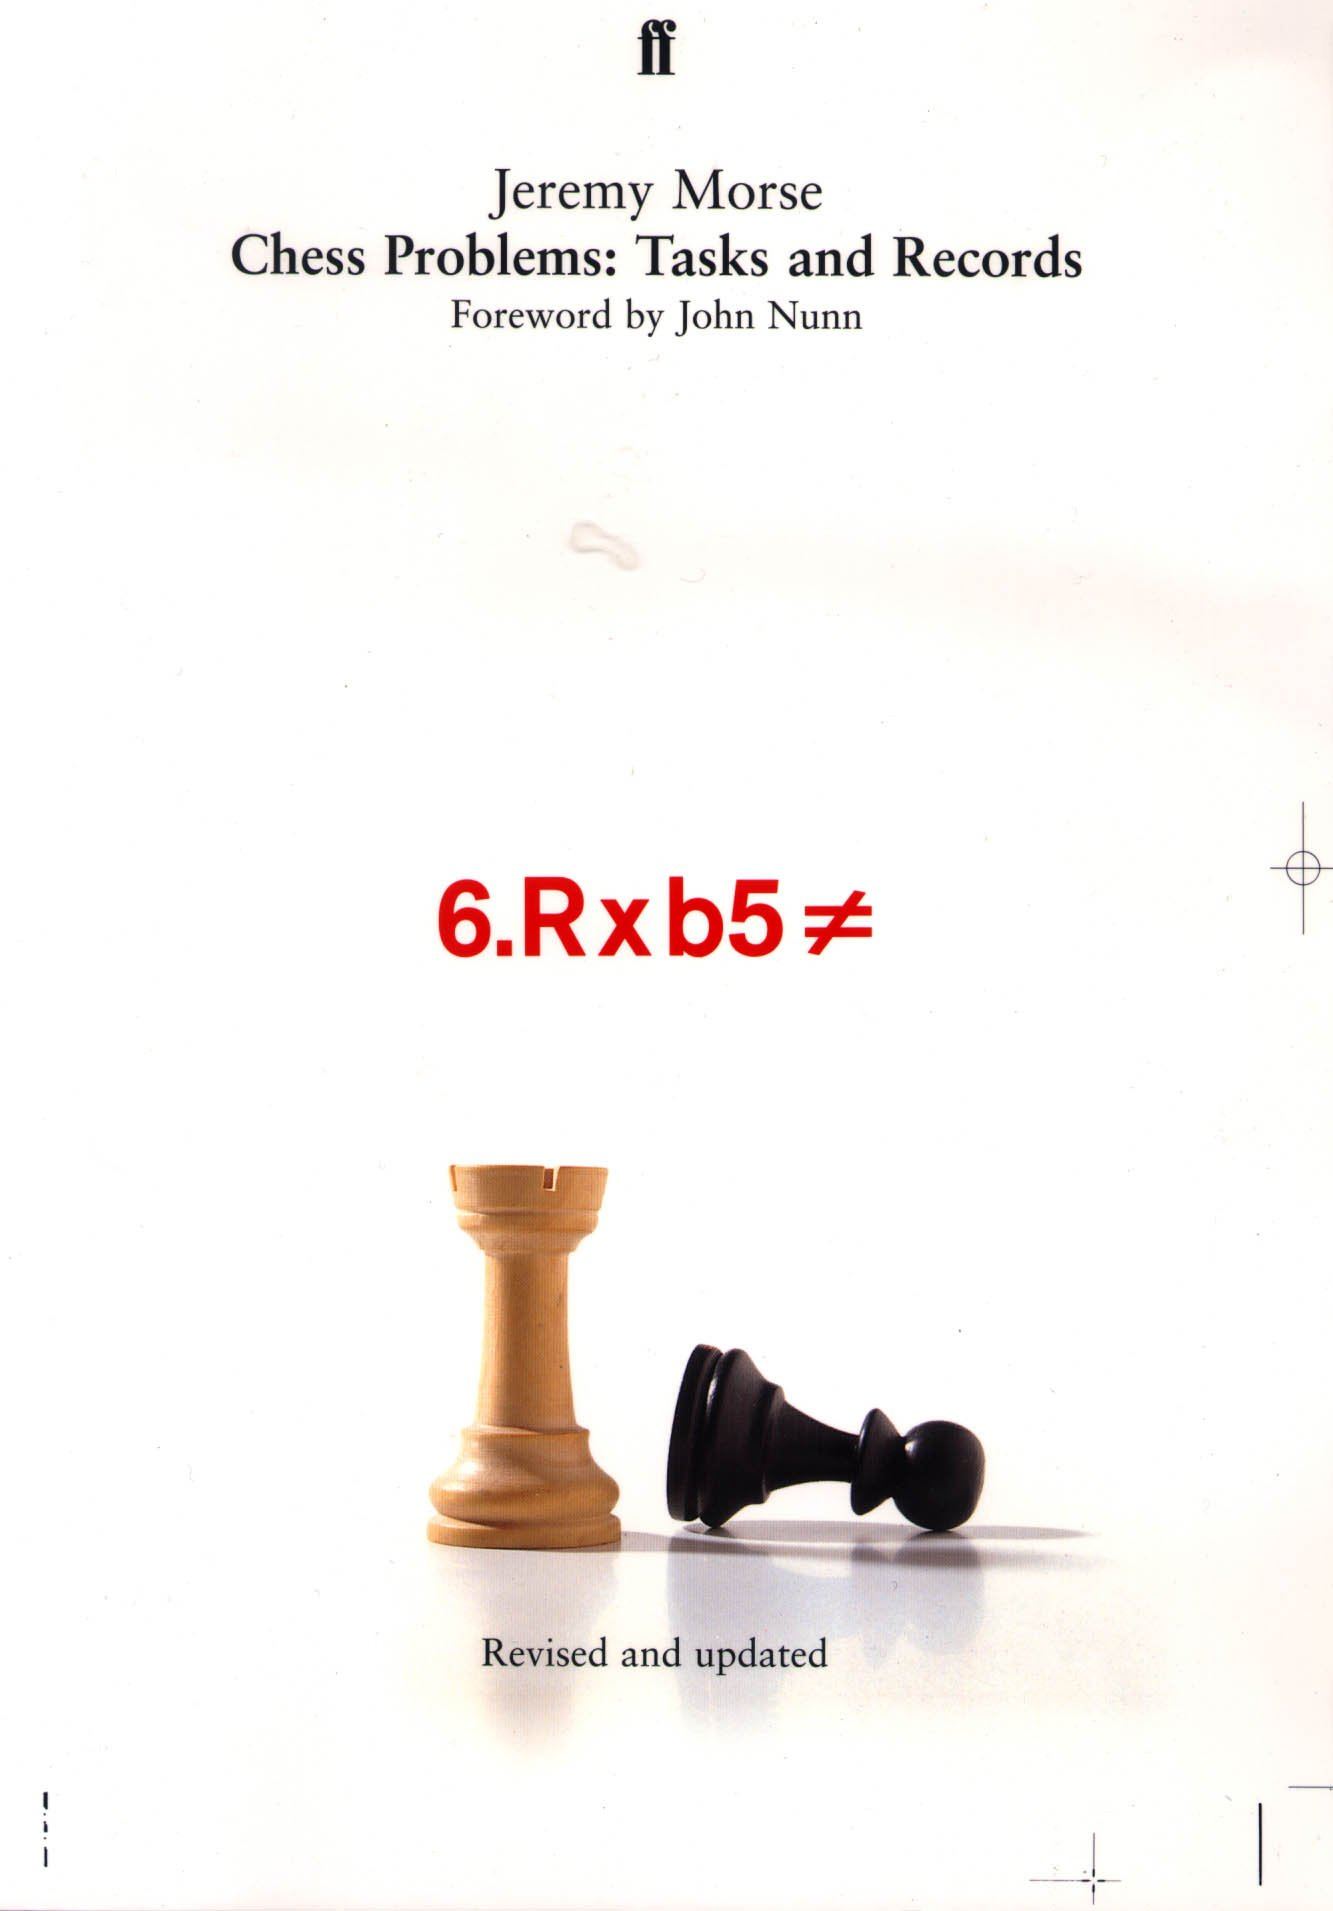 Chess Problems : Tasks and Records, CJ Morse, Faber & Faber, 1995